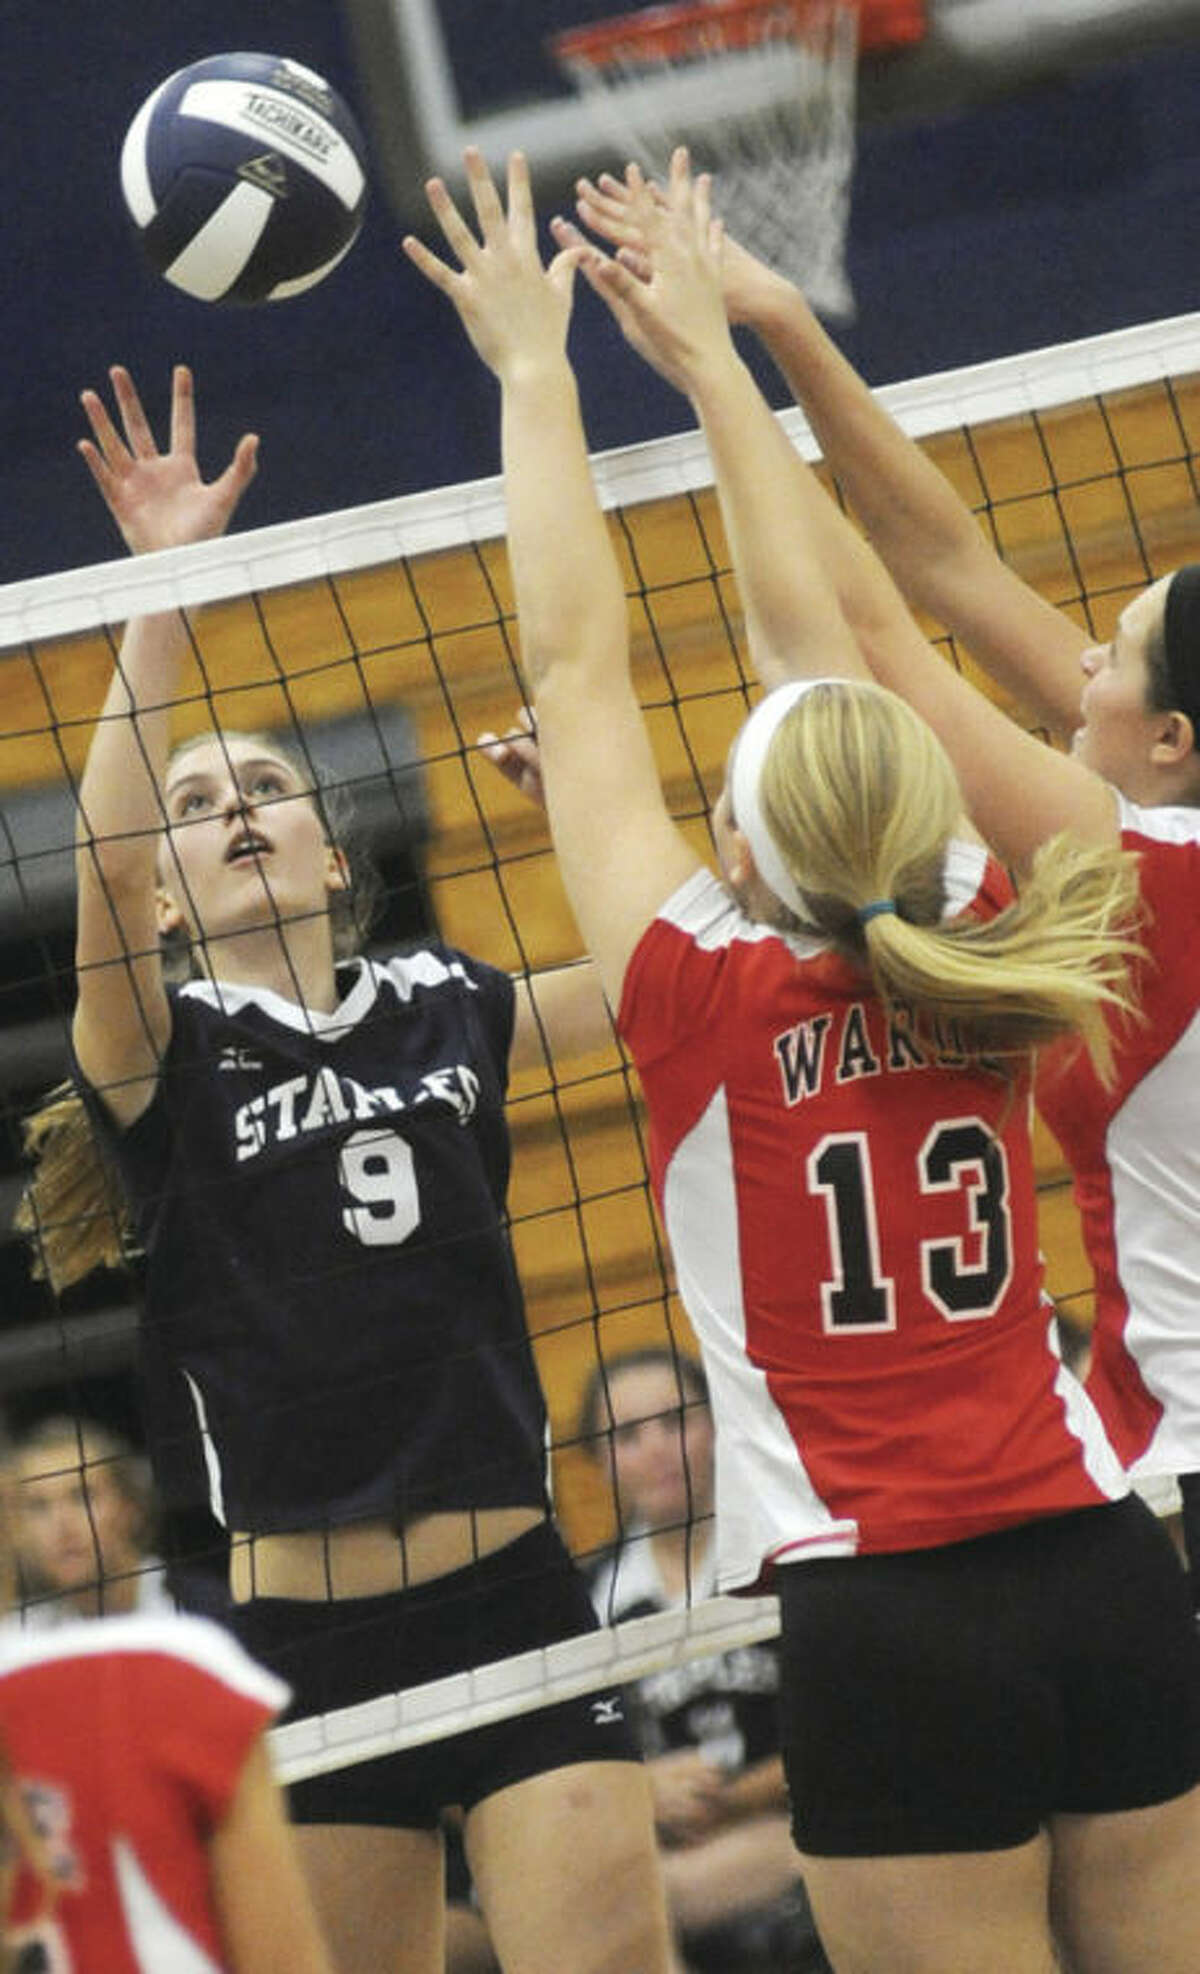 Hour photo/Matthew Vinci Lauren Mushro of Staples, left, andKenxie Burns and Hannah Wolf of Fairfield Warde battle at the net during Monday's FCIAC girls volleyball match in Westport. The Wreckers remained unbeaten with a 3-0 victory.